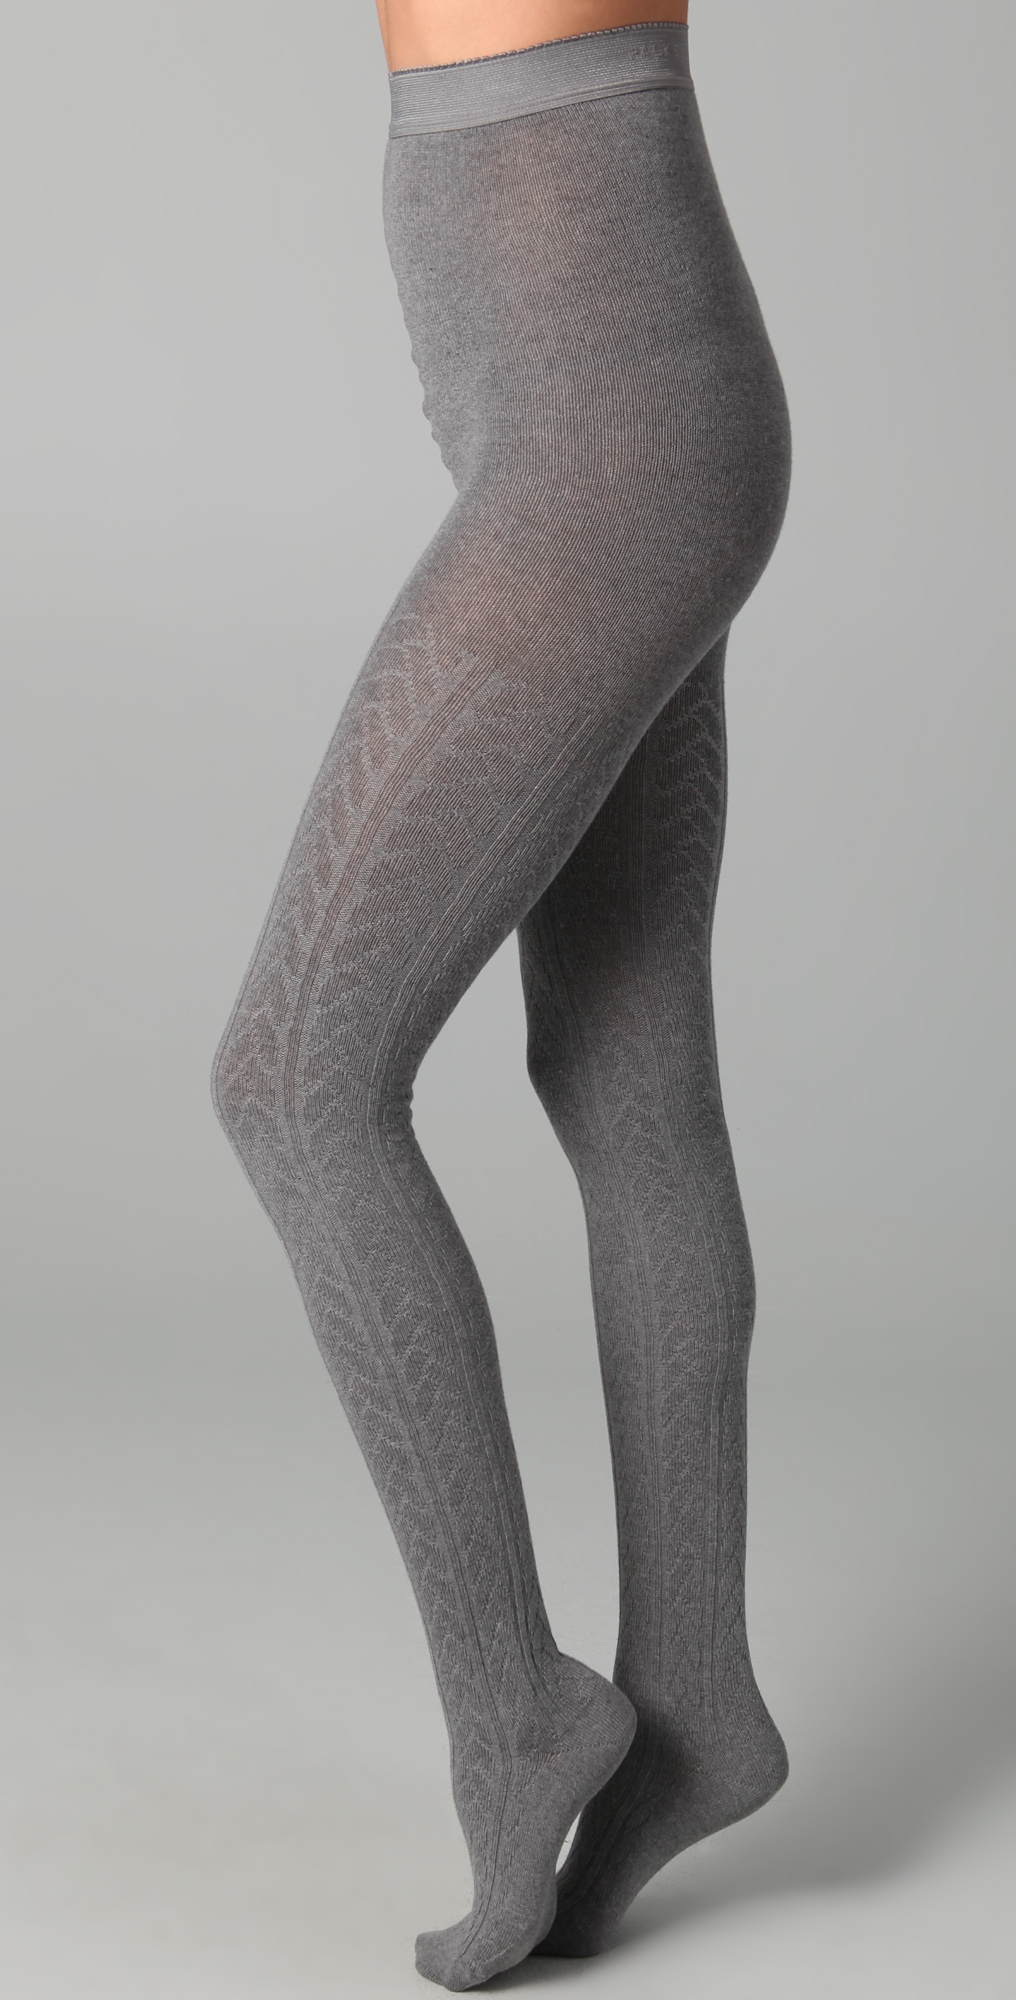 Falke Striggings Cable Knit Tights Shopbop